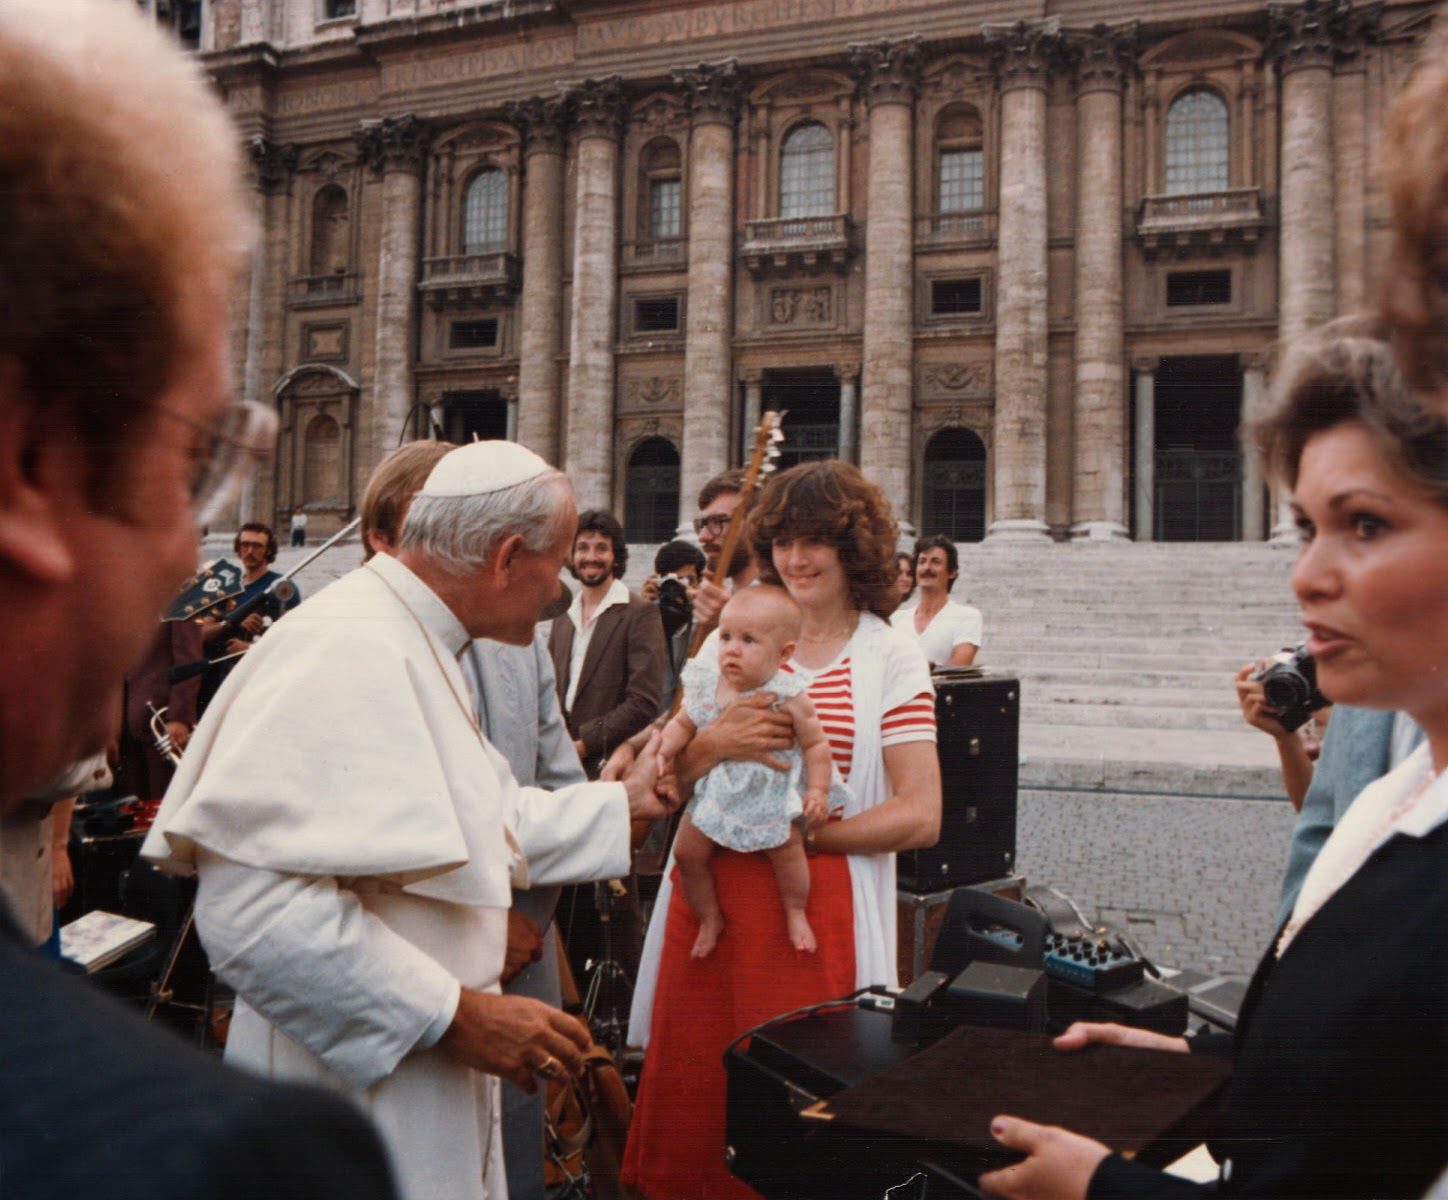 Living Sound Vatican Audience and Concert Aug. 13, 1980, L/R: Terry Law, Randy Faye, Team III (background), Pope John Paul II, Joel-Vesanen, John Paul II, Duane Nichols, Dave Berry, Baby Carrie McKibben, Nancy McKibben, Jan Law (foreground)